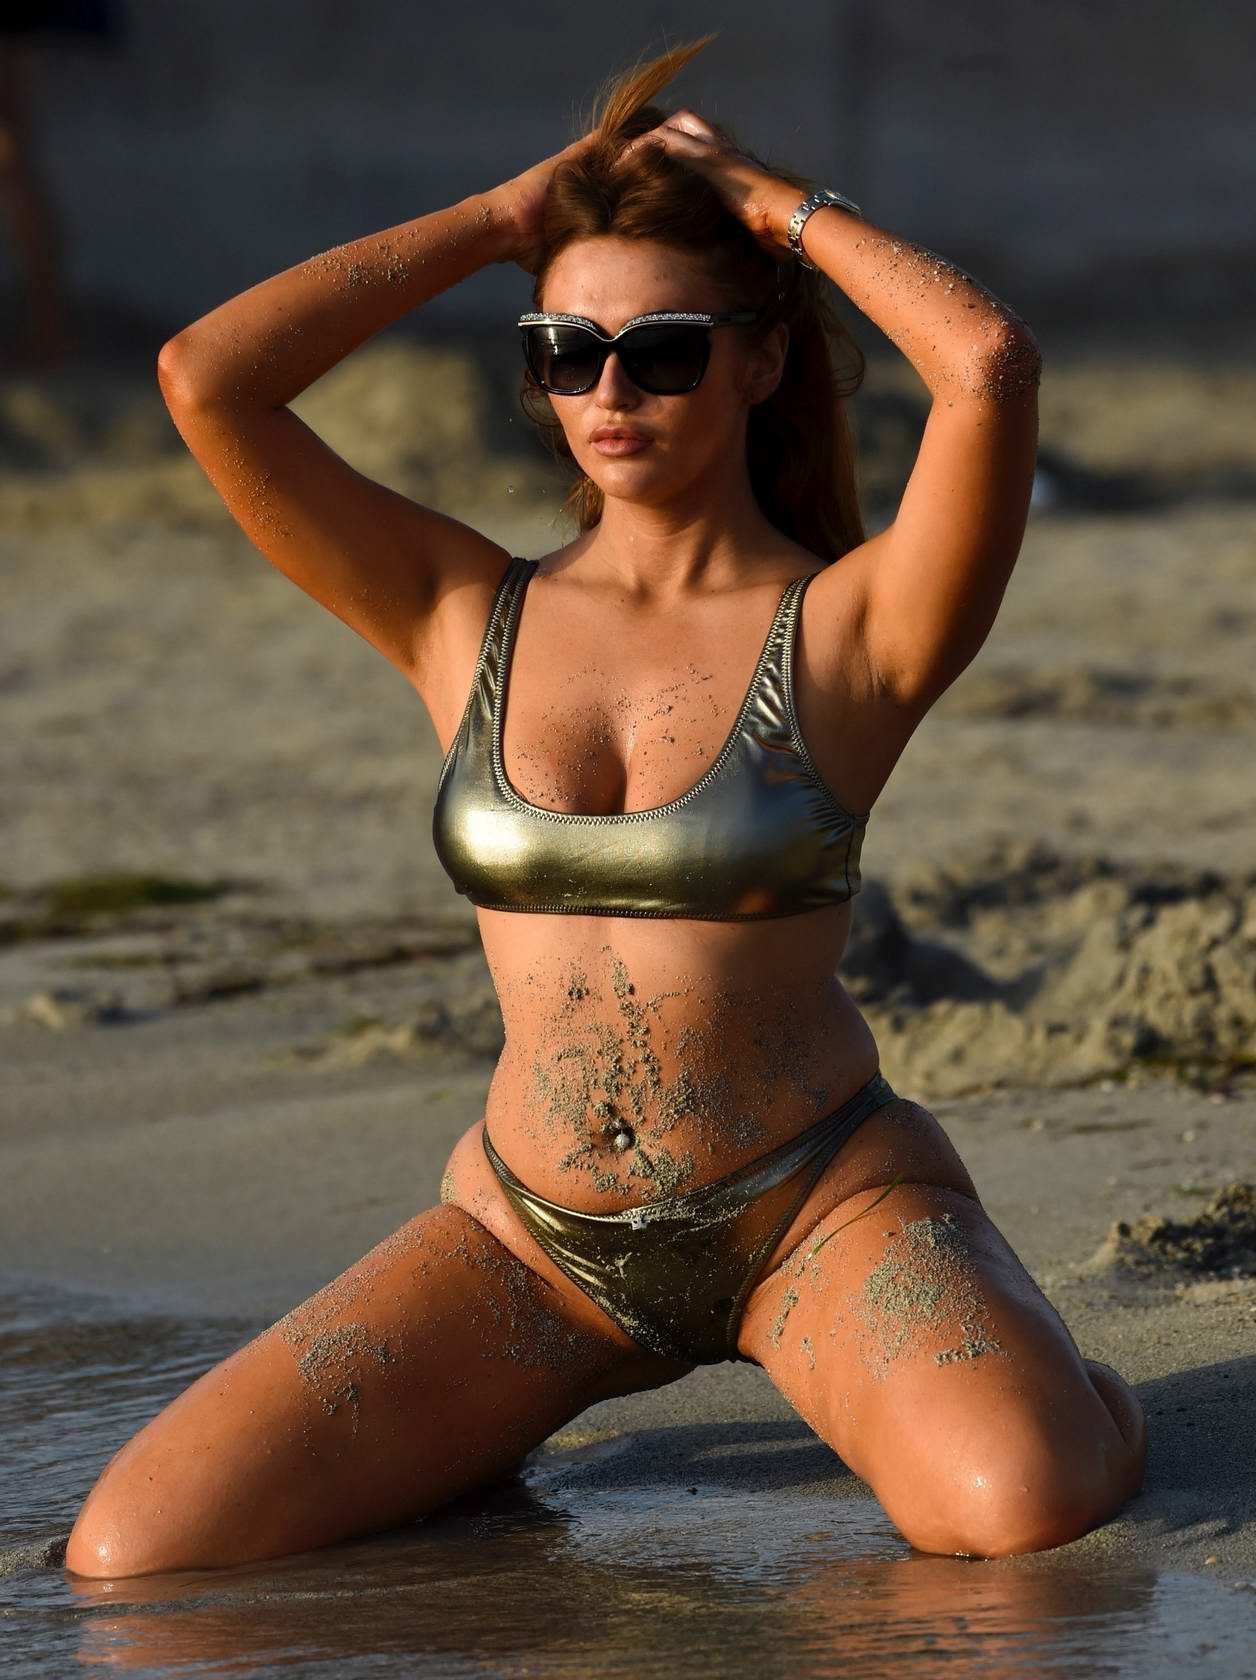 Charlotte Dawson in a bikini enjoys the sun at the beach while on holiday in Majorca, Spain